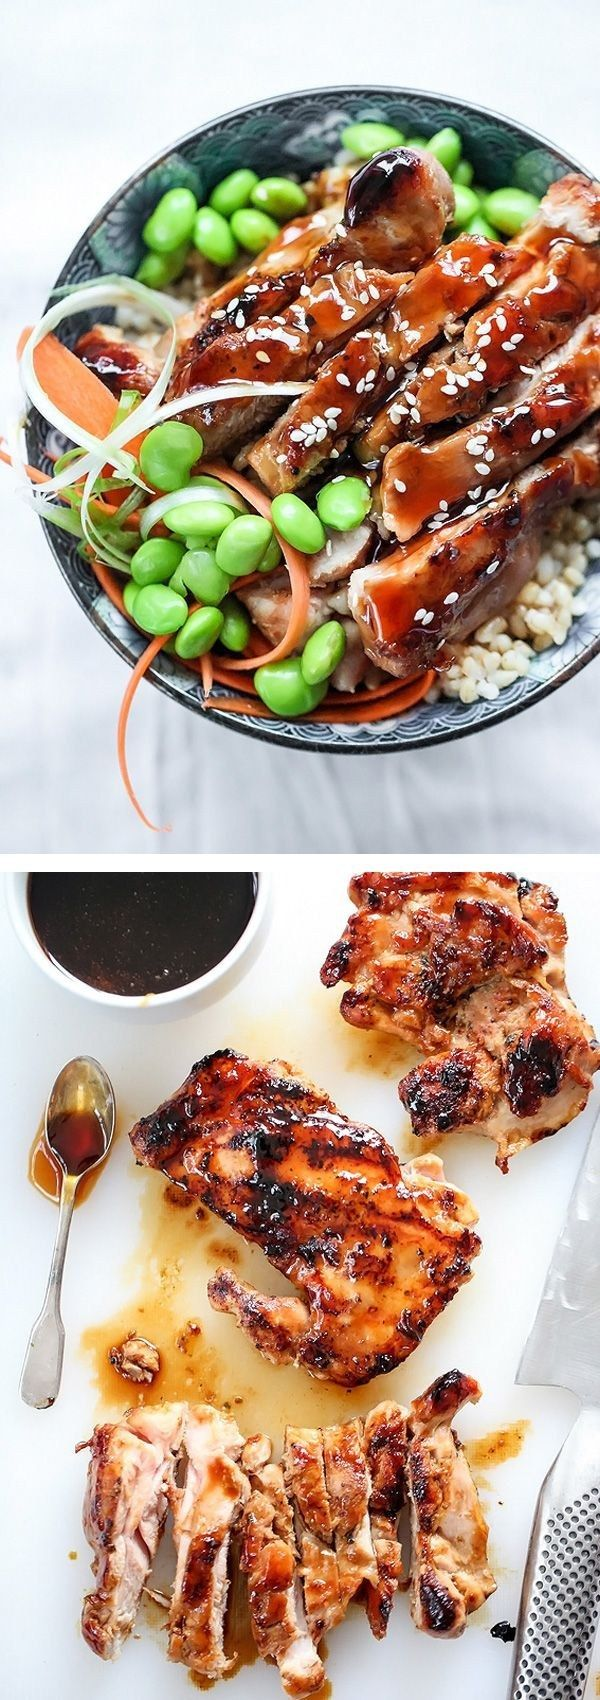 7-Spice Teriyaki Chicken Rice Bowls | 24 Healthy Rice Bowls You Should Eat For Dinner